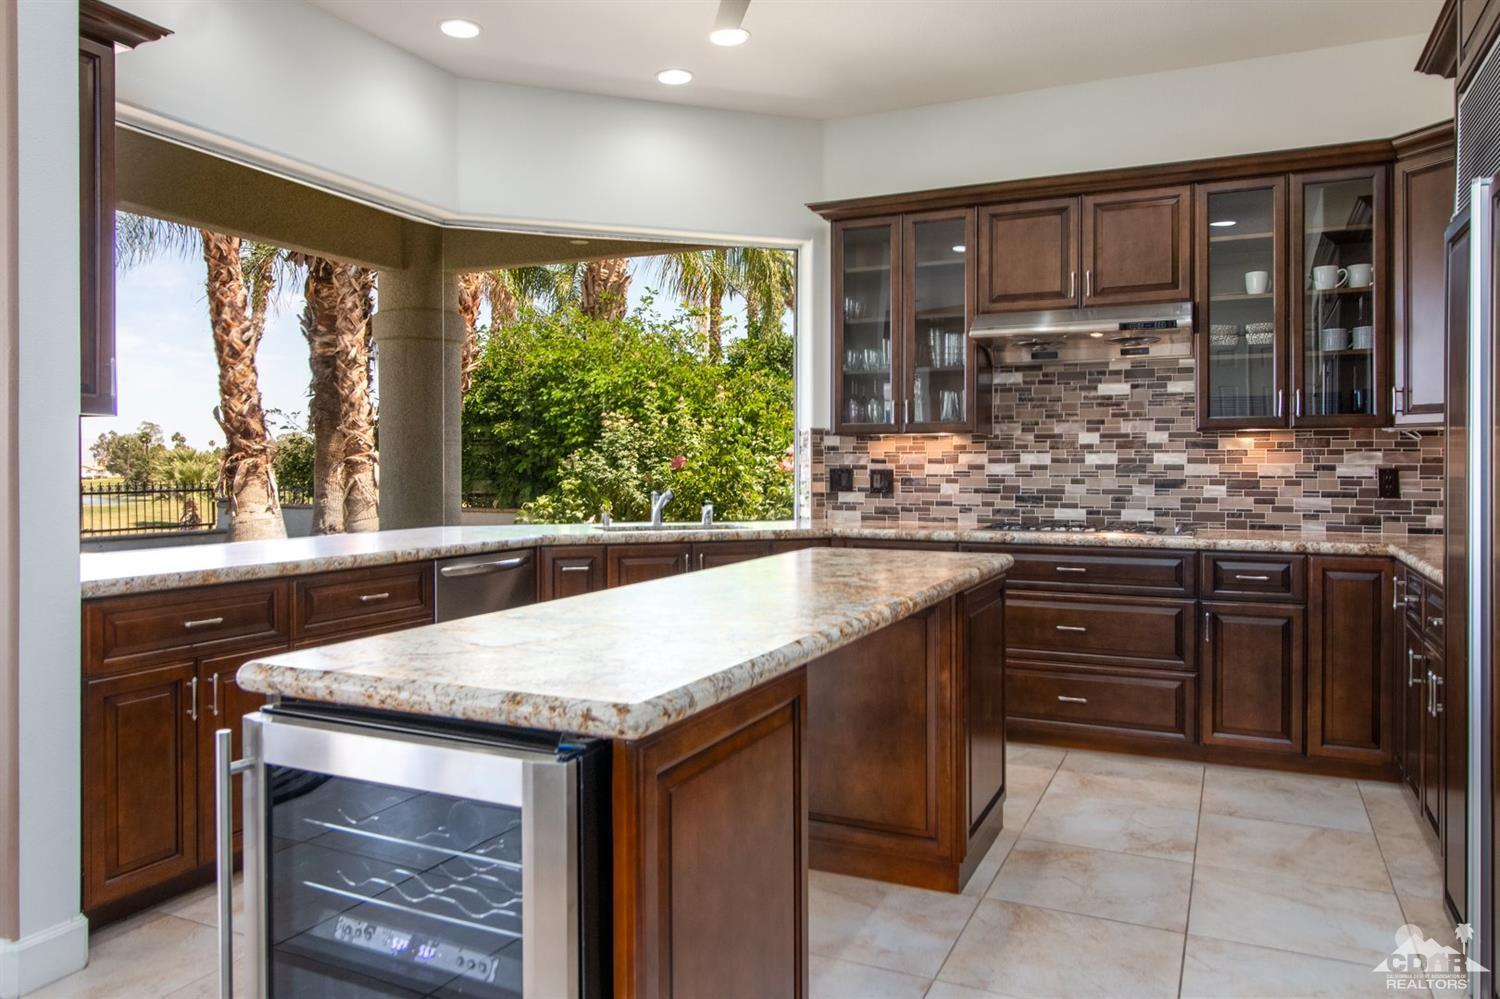 350 Crest Lake Drive, Palm Desert, California 92211, 4 Bedrooms Bedrooms, ,4 BathroomsBathrooms,Residential,For Sale,350 Crest Lake Drive,219034771